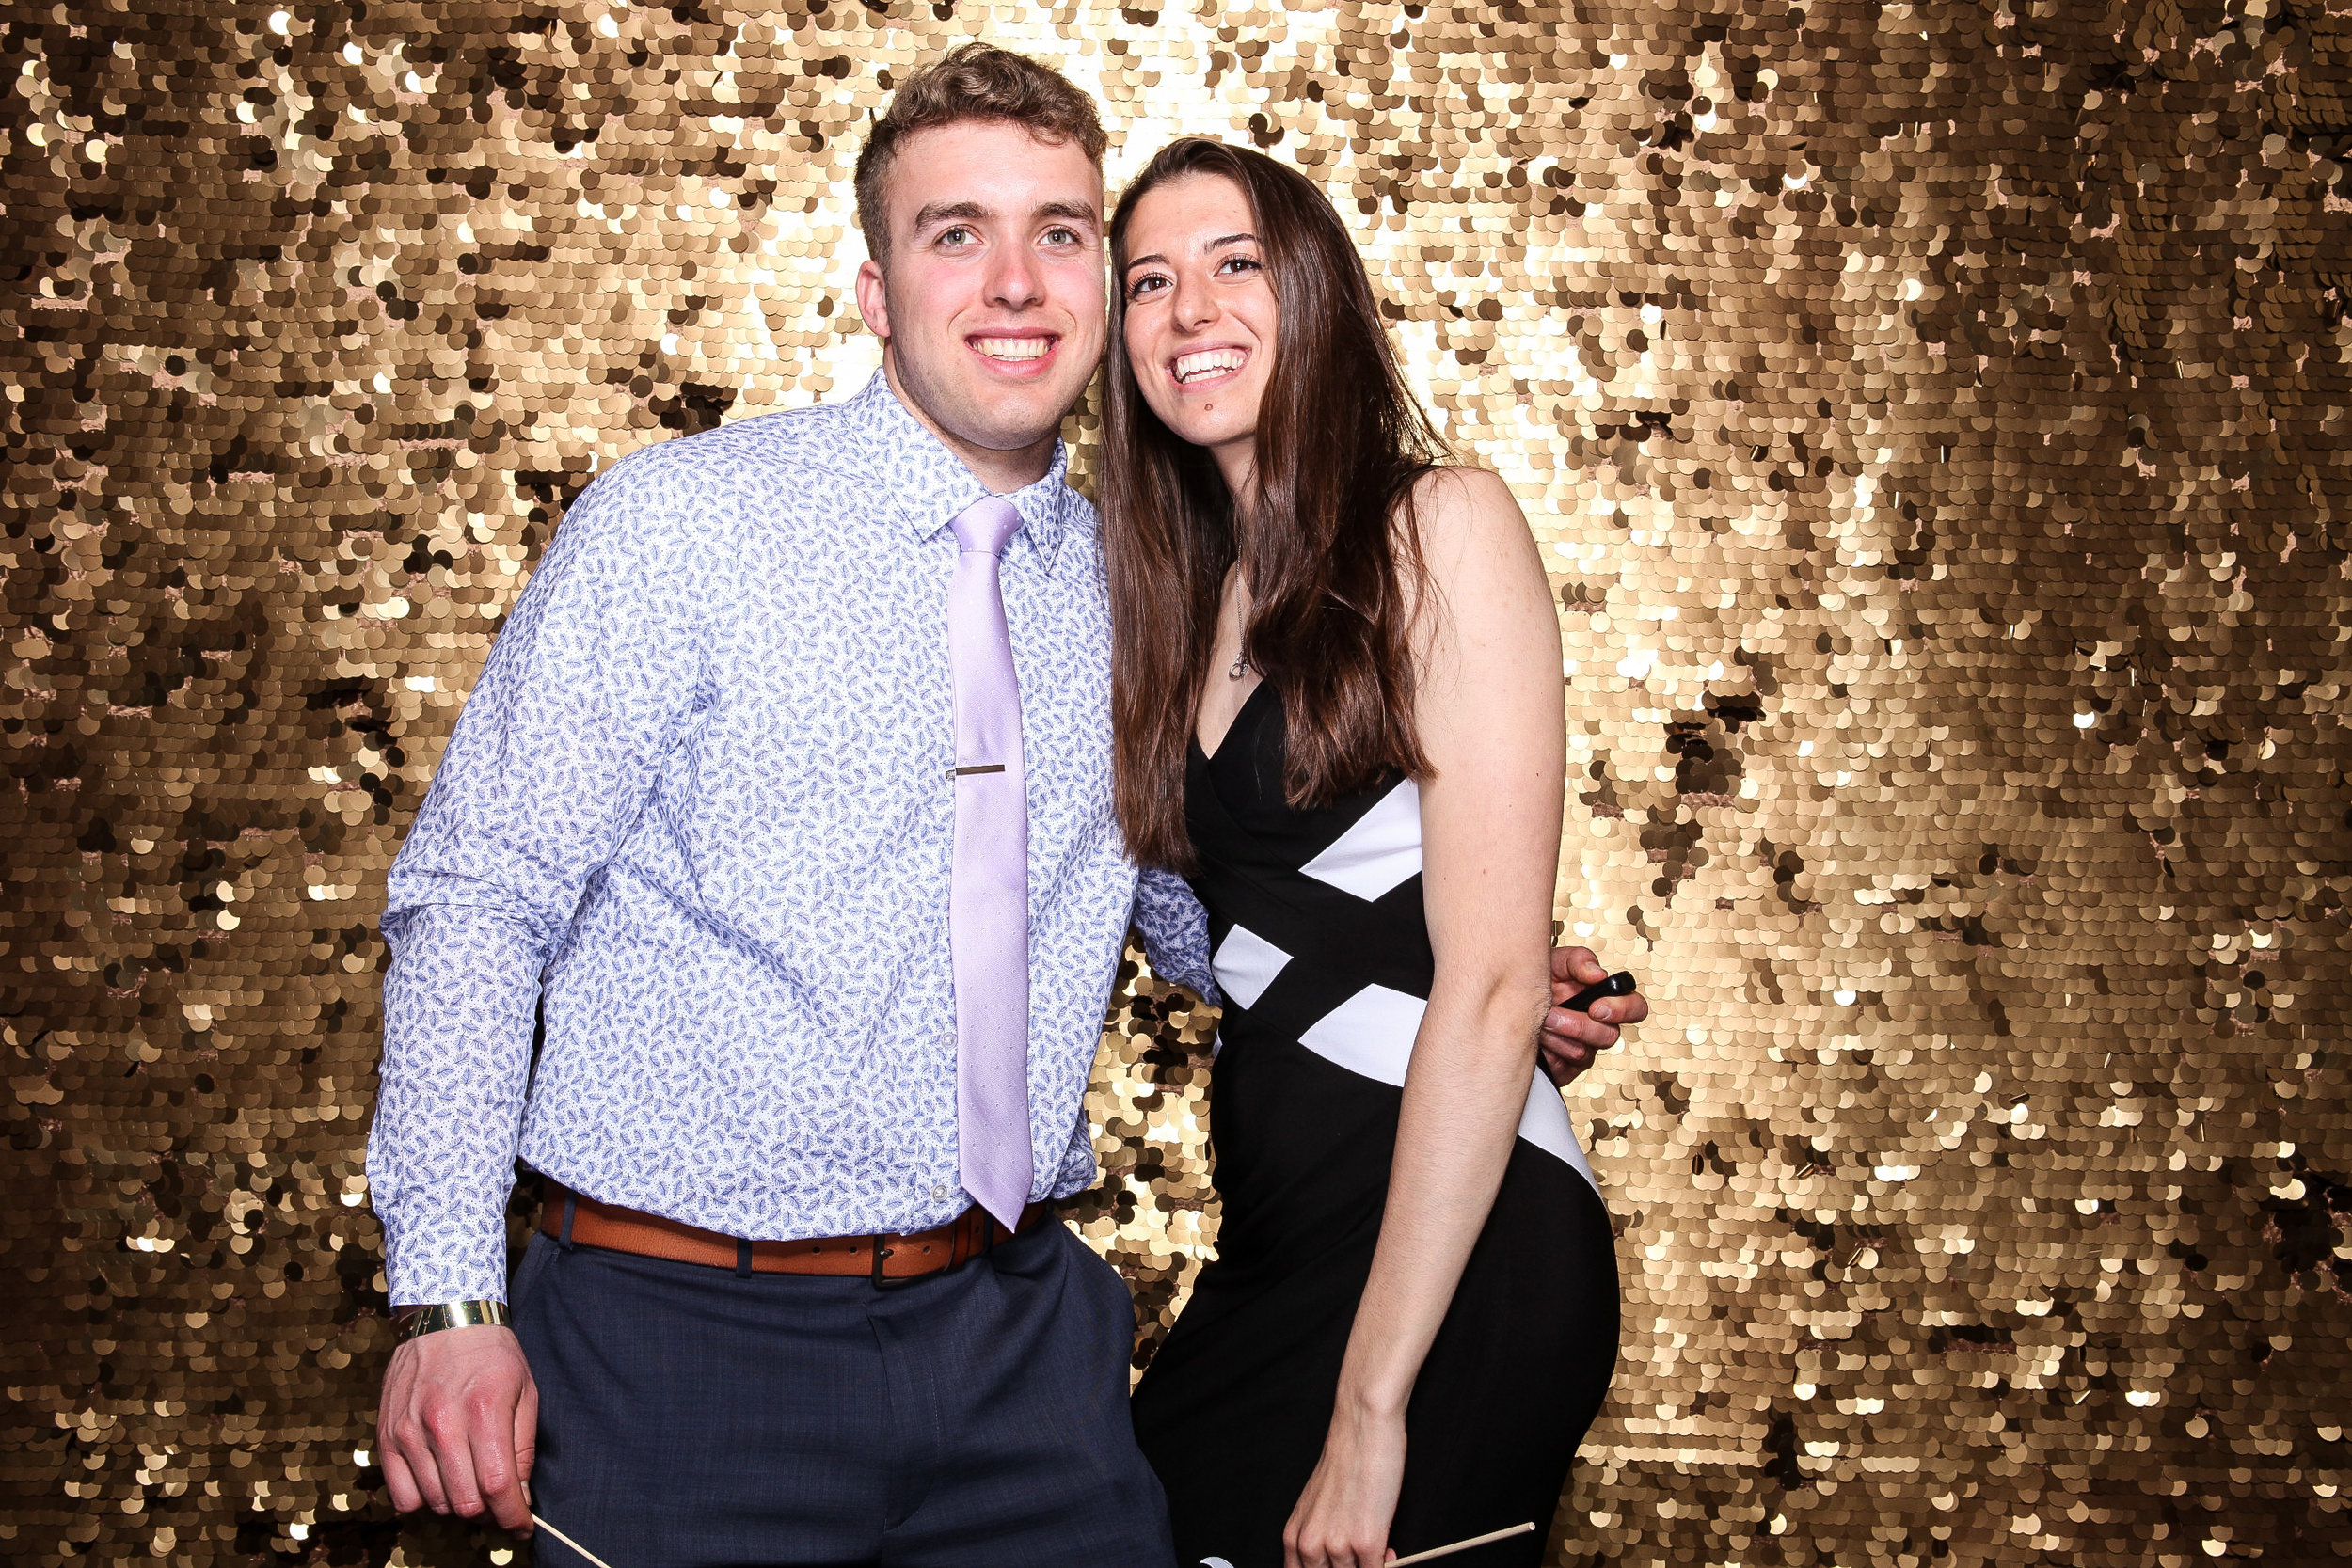 20190503_Adelphi_Senior_Formal-243.jpg